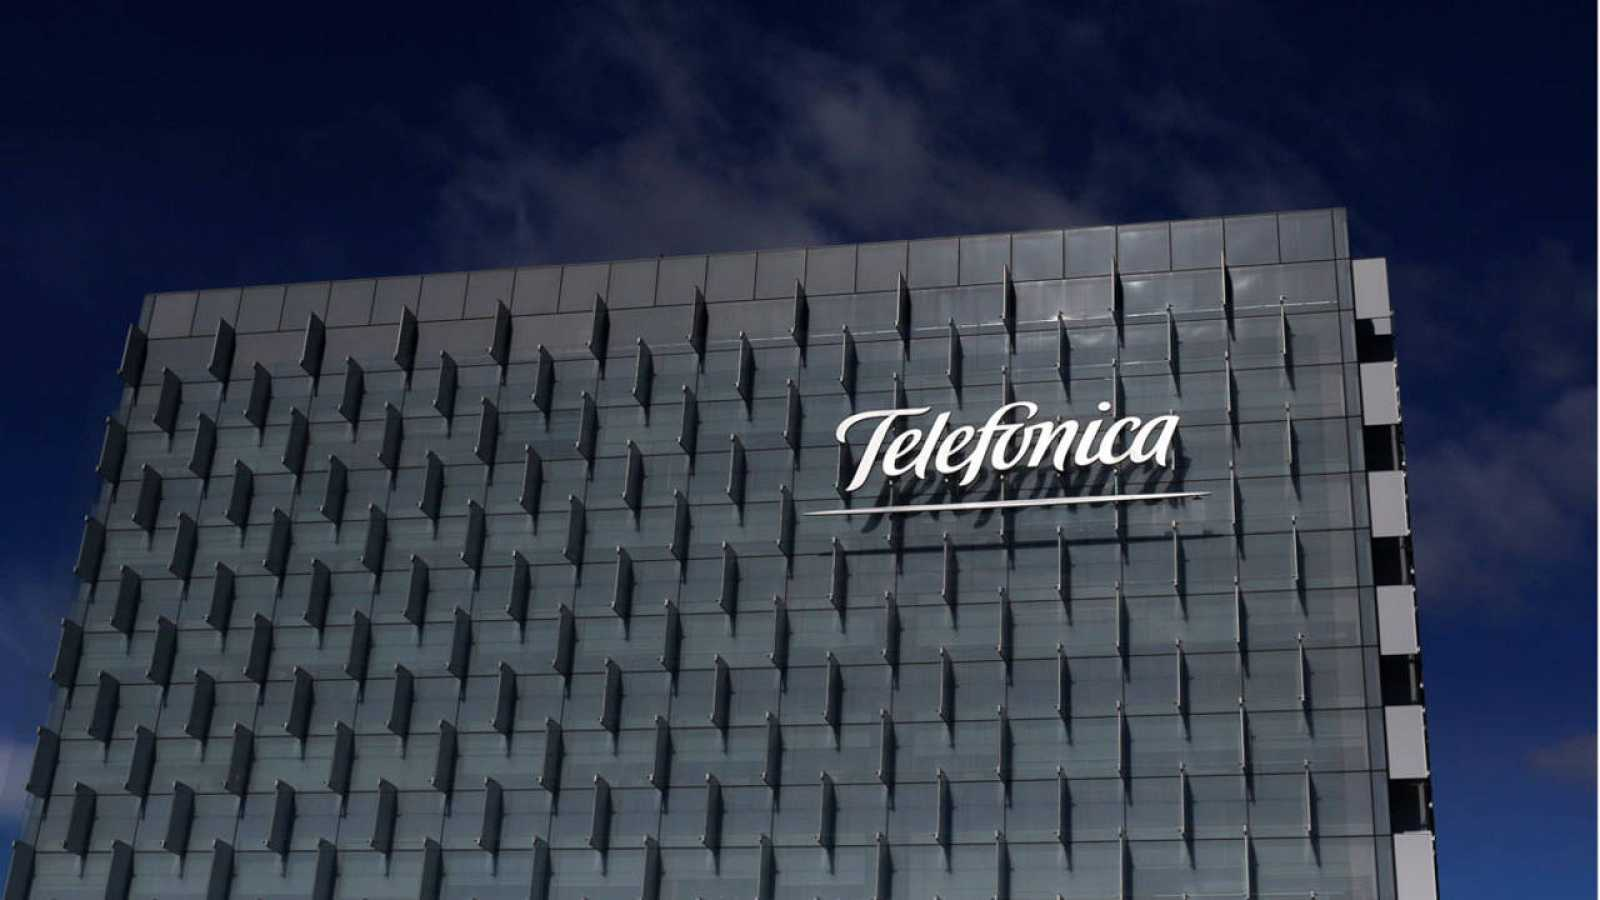 Edificio corporativo de Telefónica en Madrid